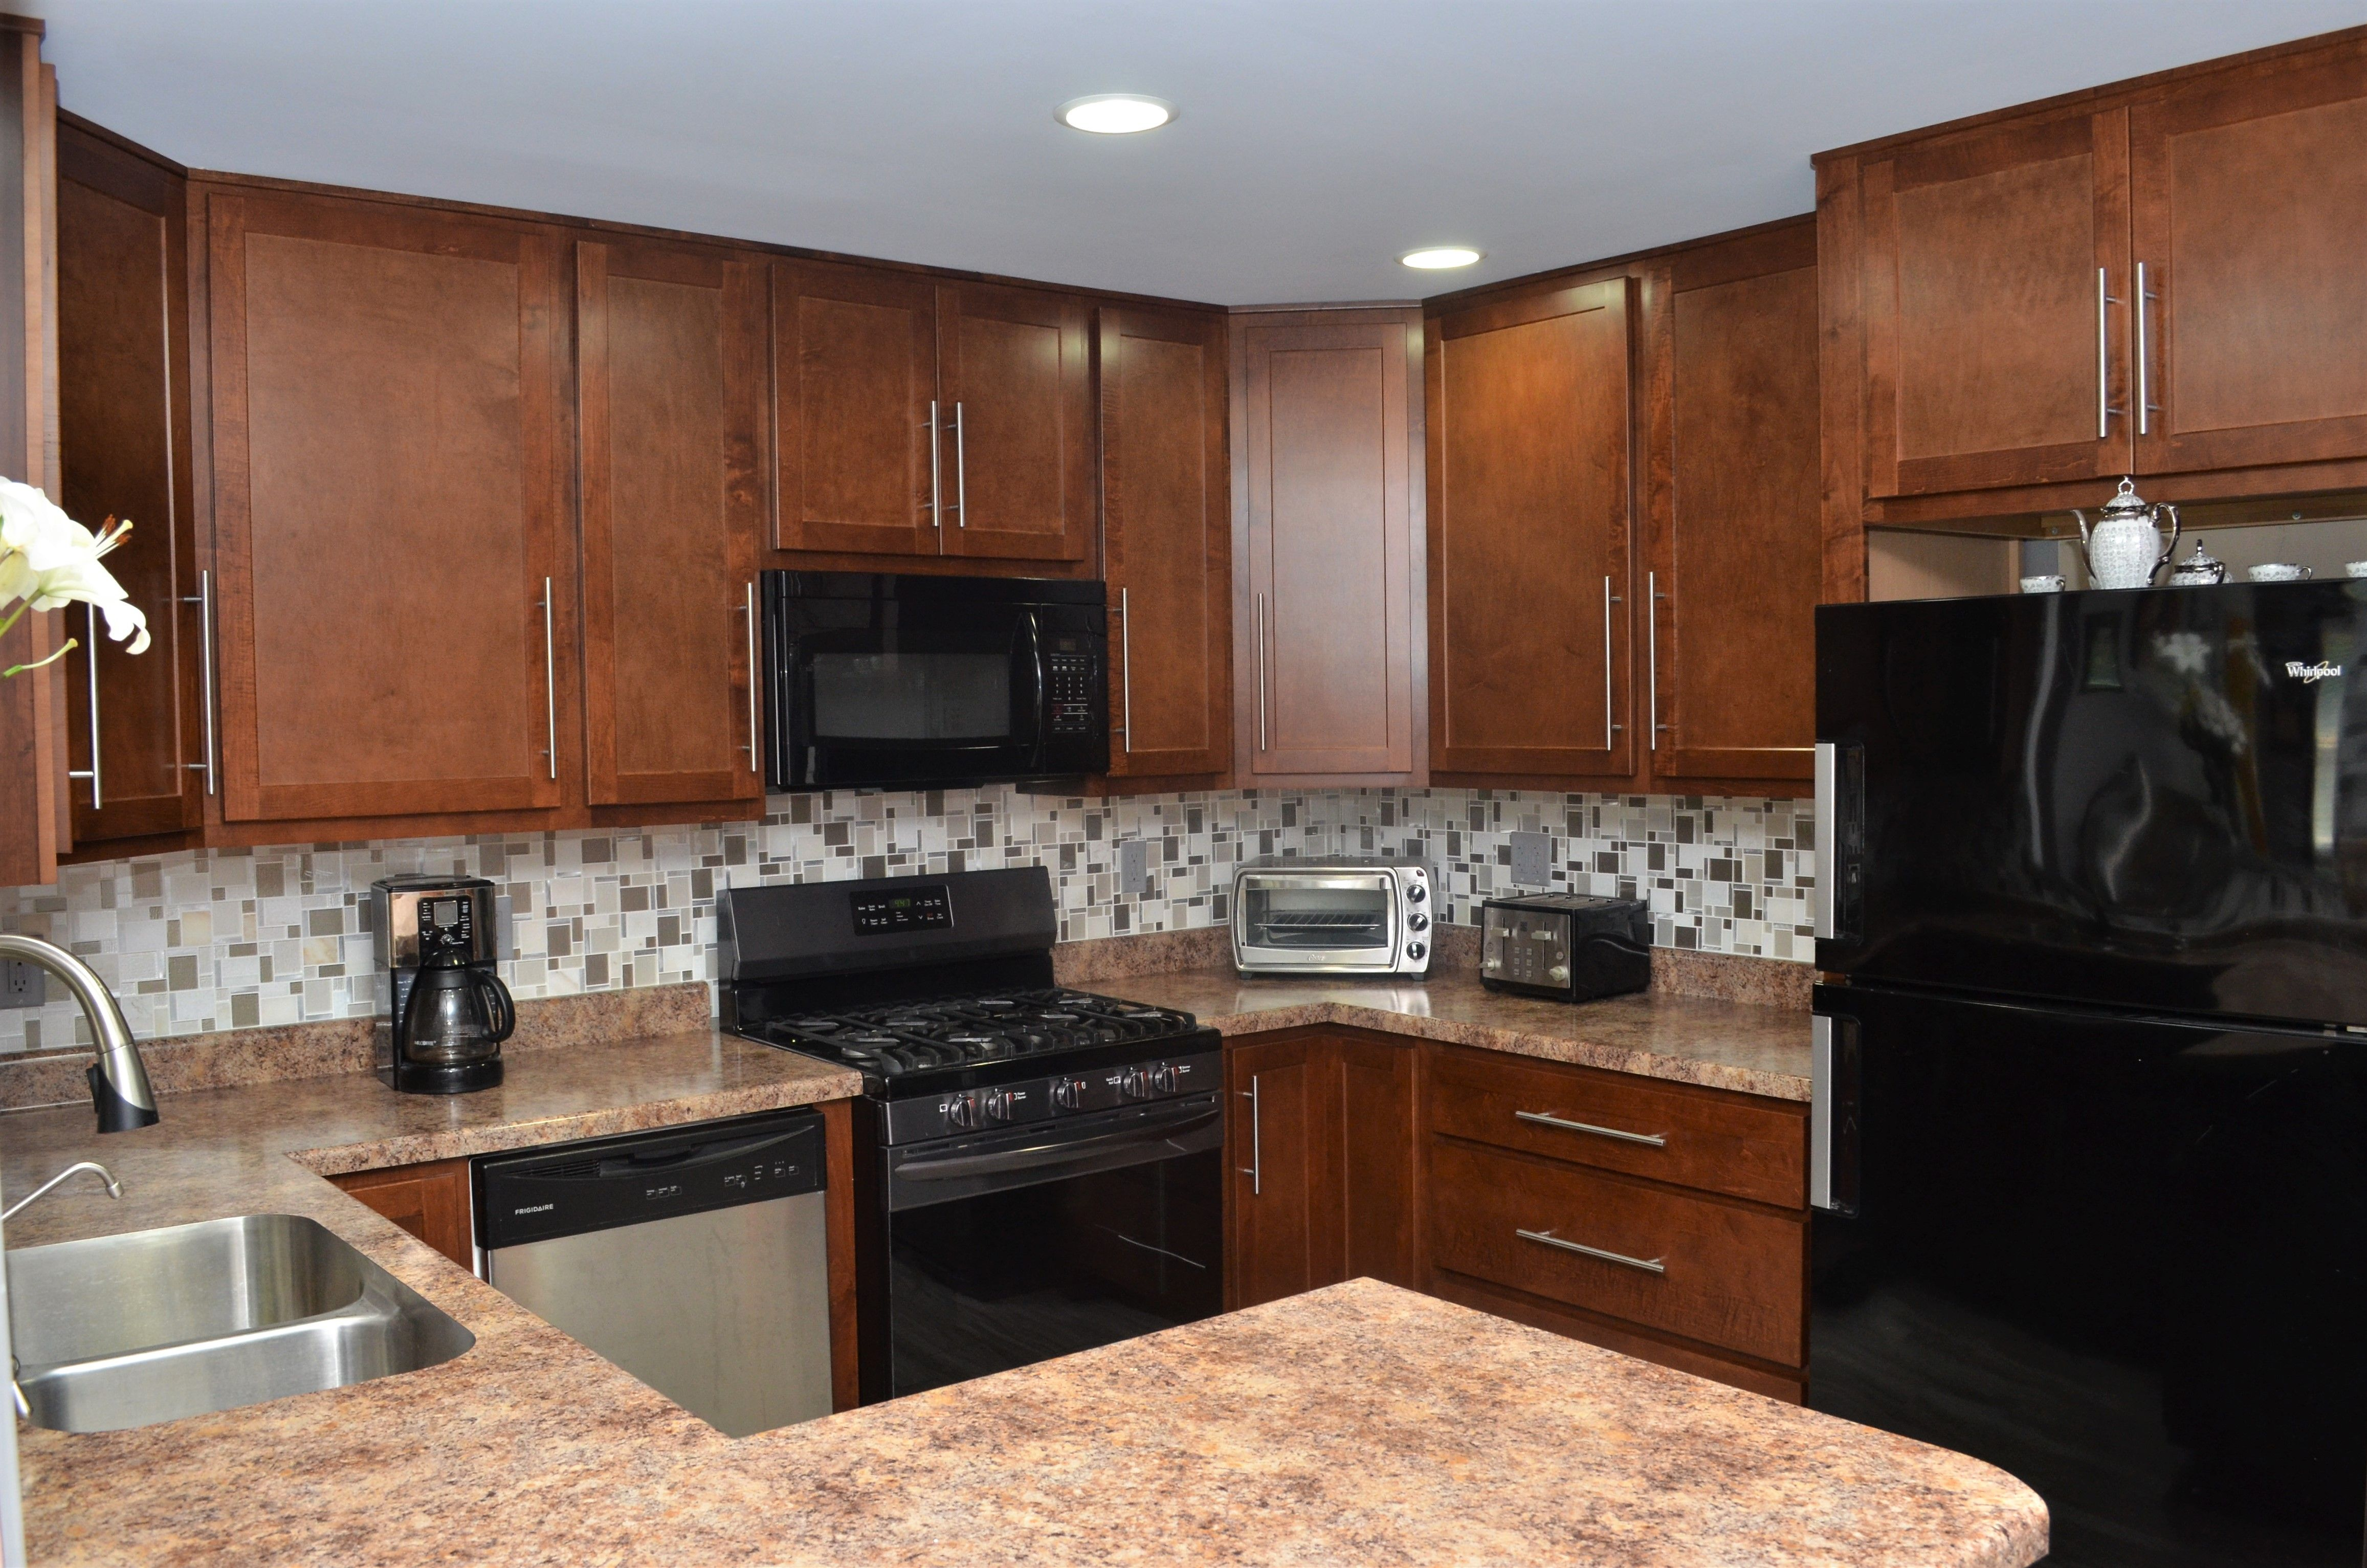 Baileytown Cabintery Wood Species: Maple Cabinet Finish ... on Countertop Colors For Maple Cabinets  id=44656